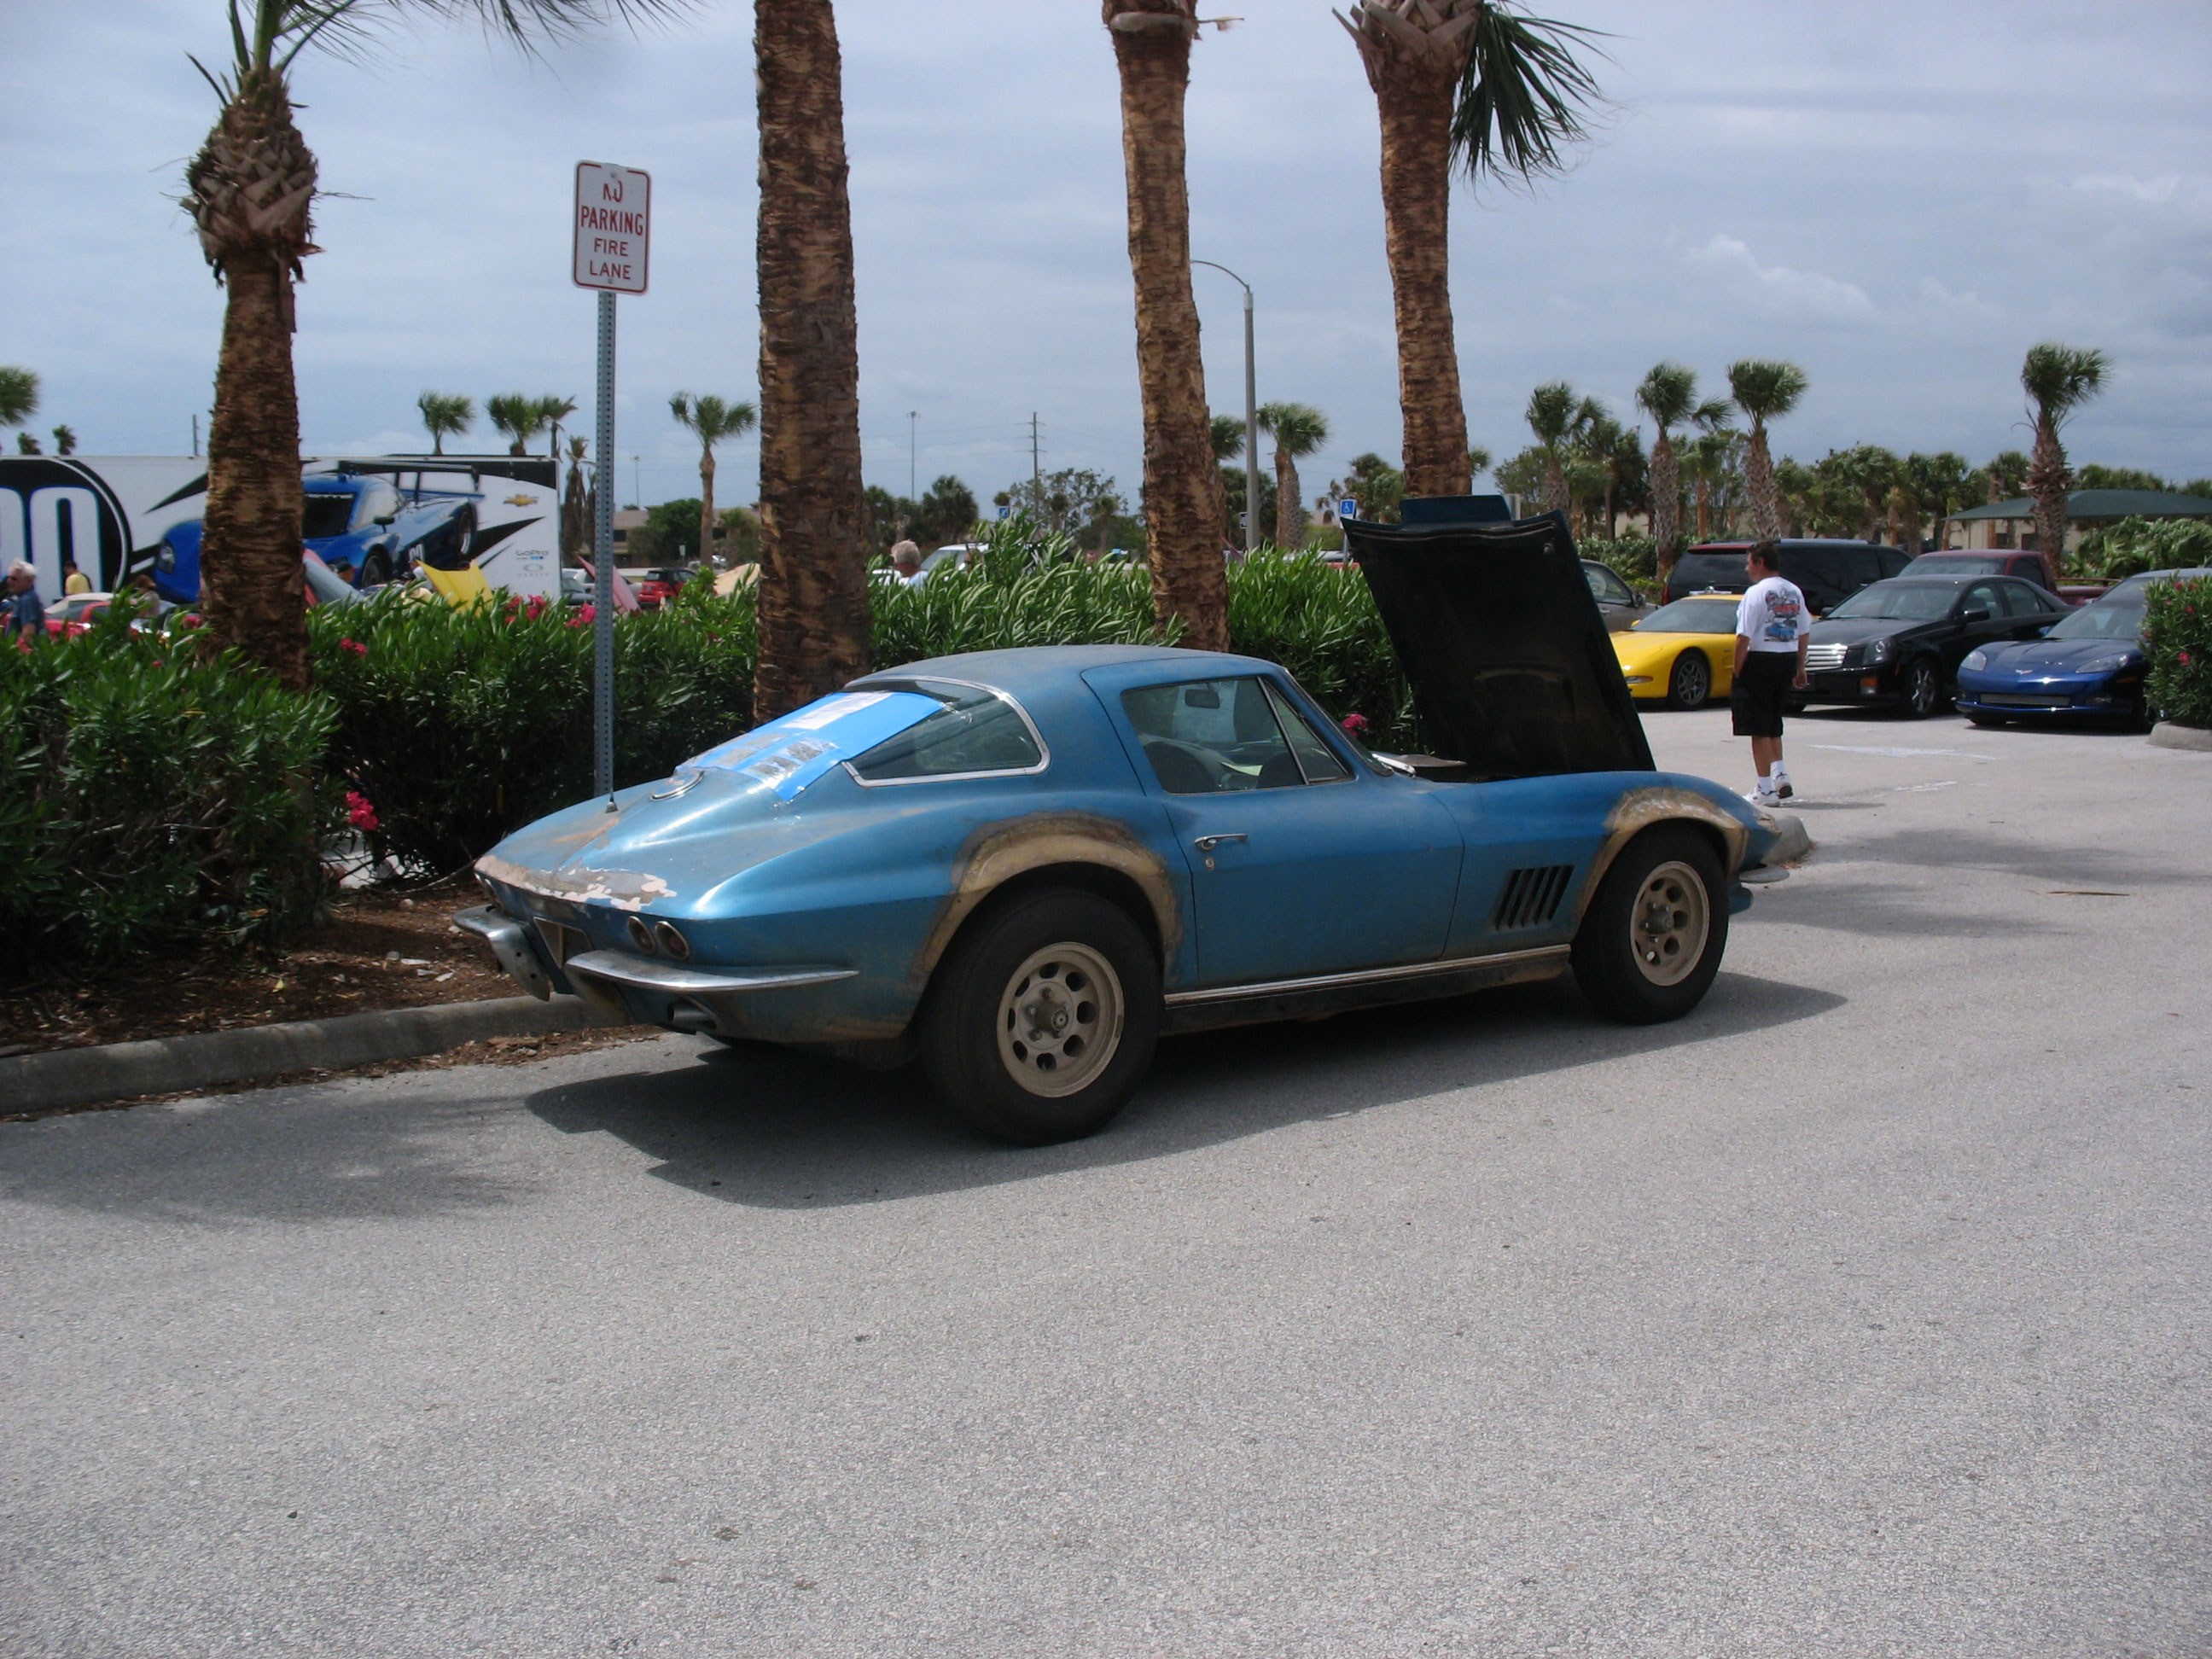 One Owner Car Guy >> 251051174912: Neil Armstrong's '67 Corvette - collectSPACE ...